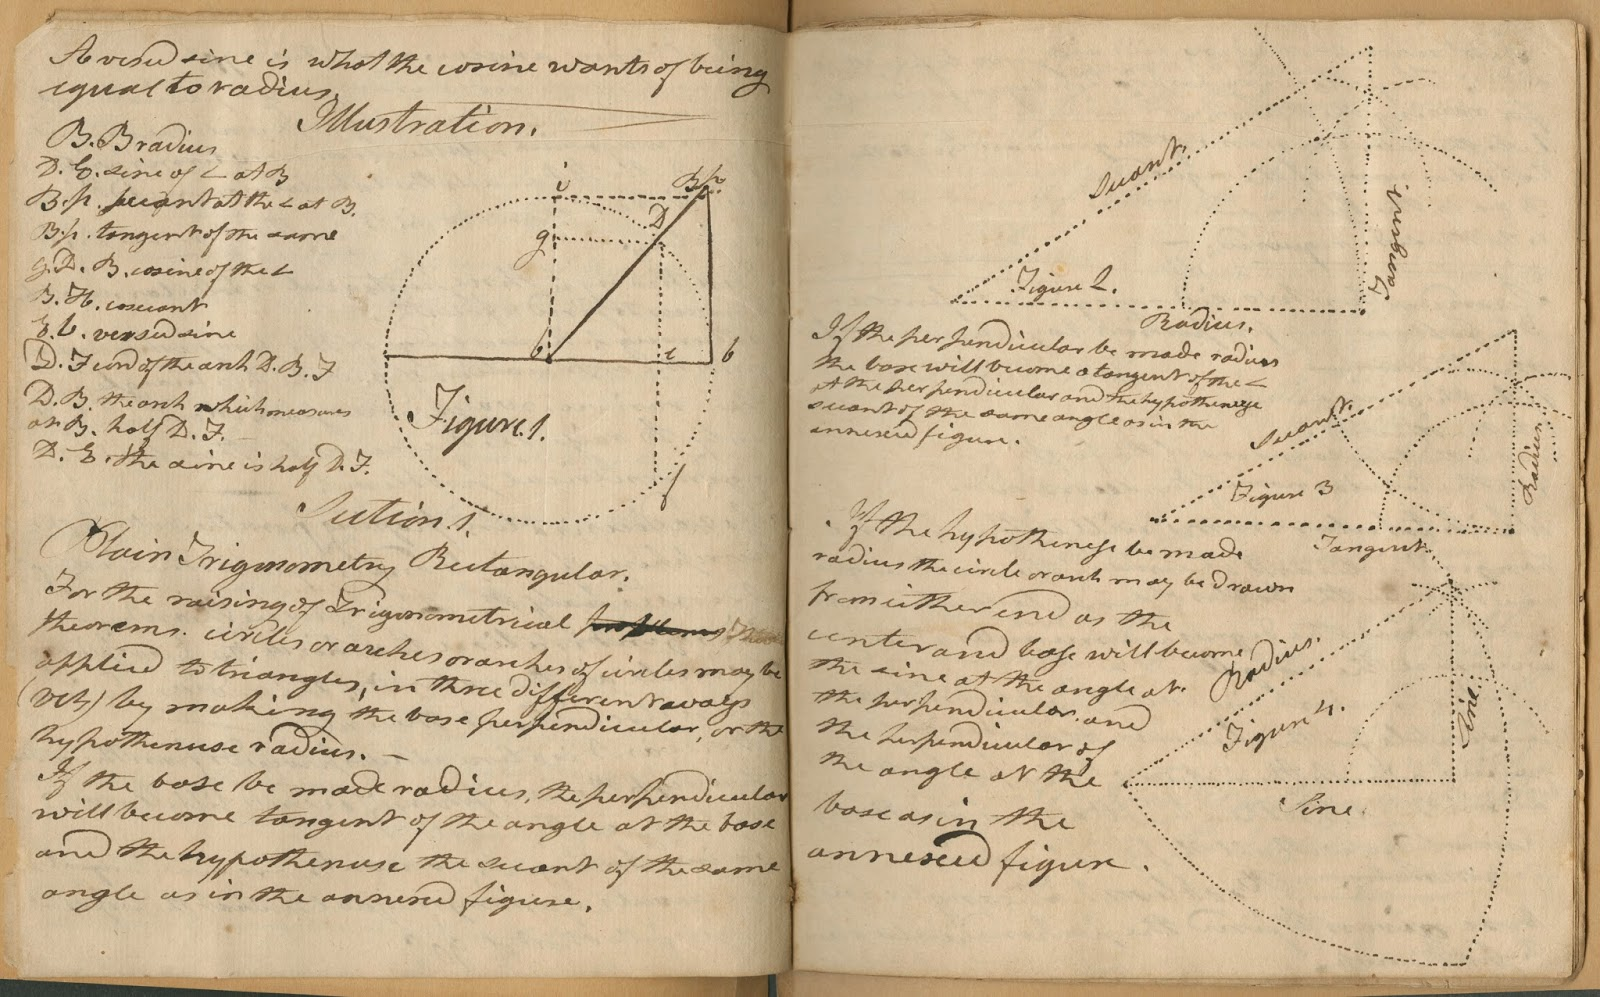 An open book of handwritten text and geometric figures.